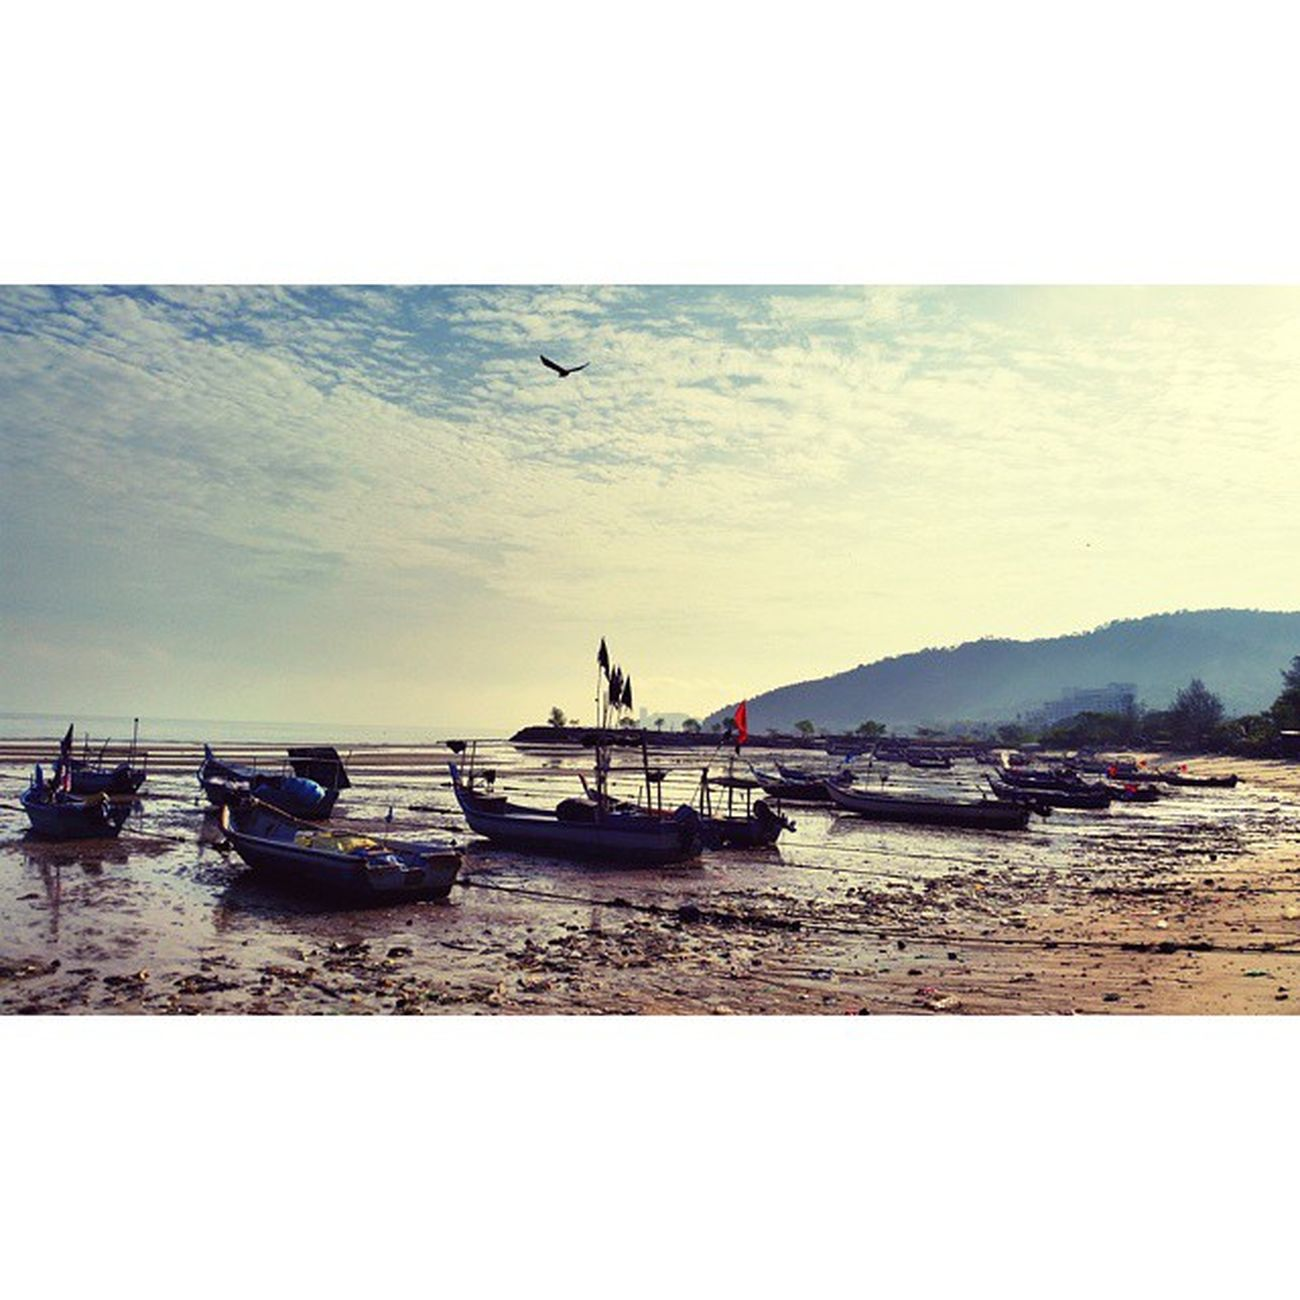 A fishing village near the Penang National Park on the west coast of the cape at the northwest of Penang Island. Penanglang Penang Beach Malaysia Travelling Travelgram Natureporn FishingVillage Sunrise Nationalgeographic Malaysiaboleh Penangisland Cb_travellogs